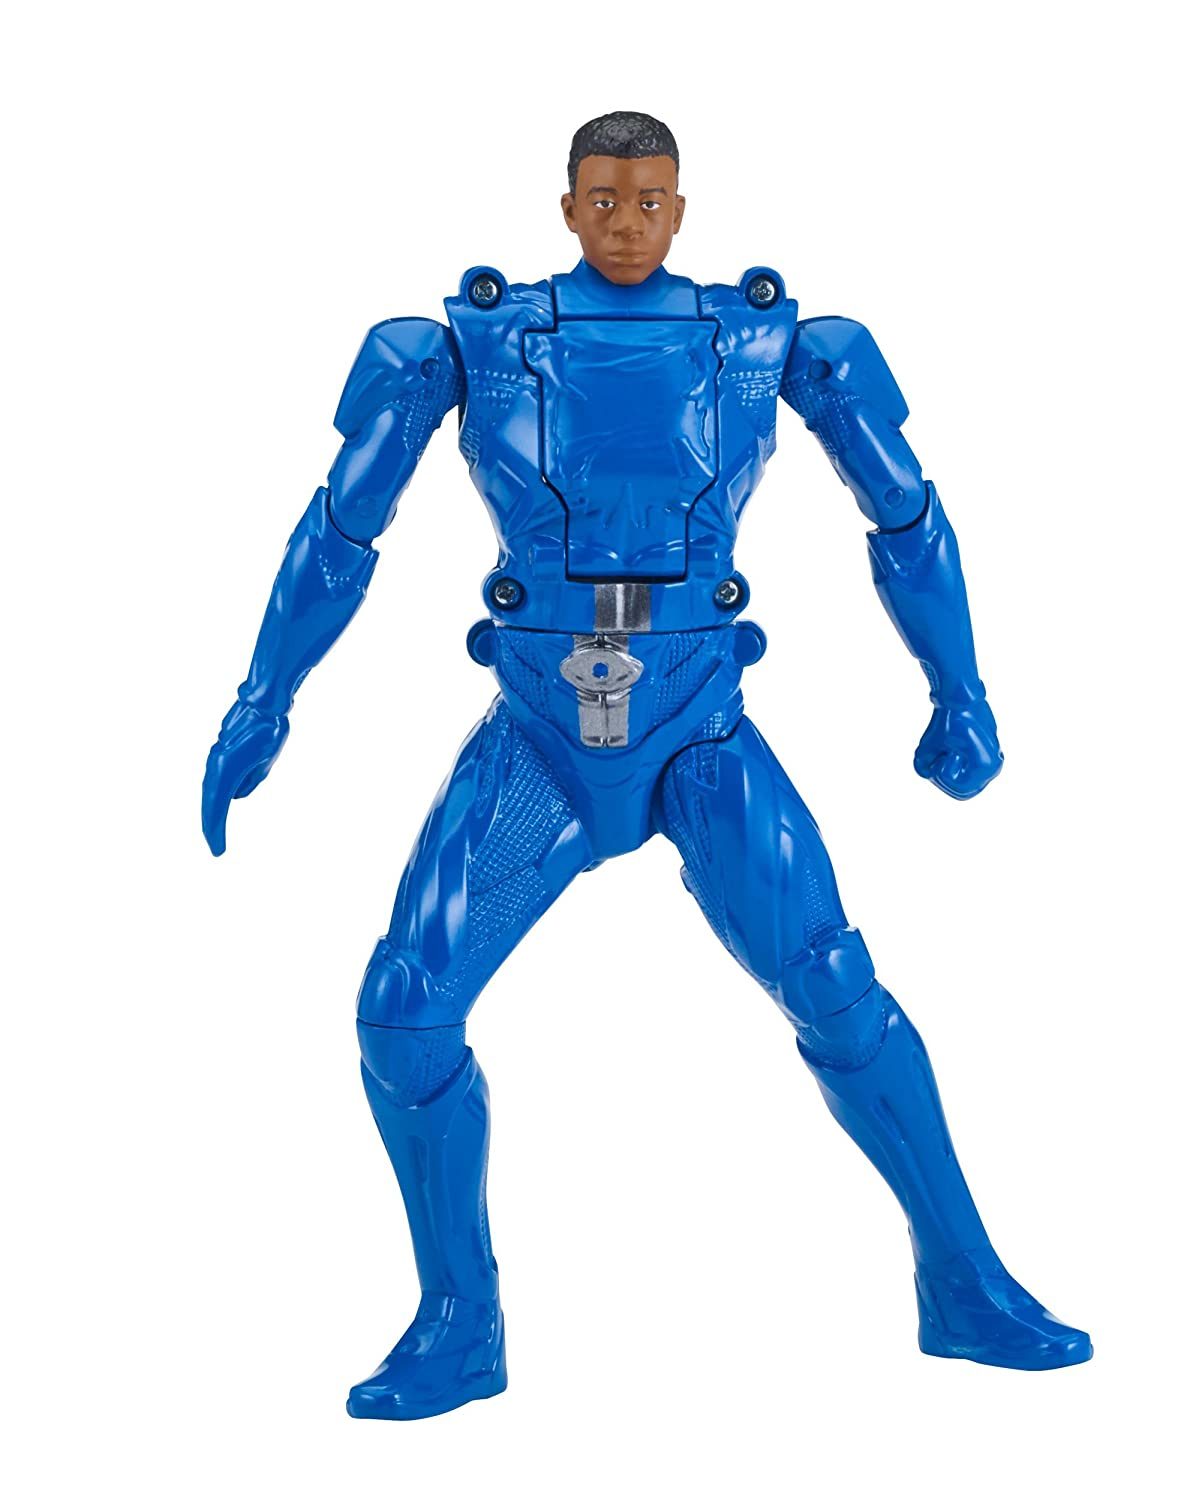 Power Rangers Movie Super Morphing Action Figure Bandai America Incorporated 42656